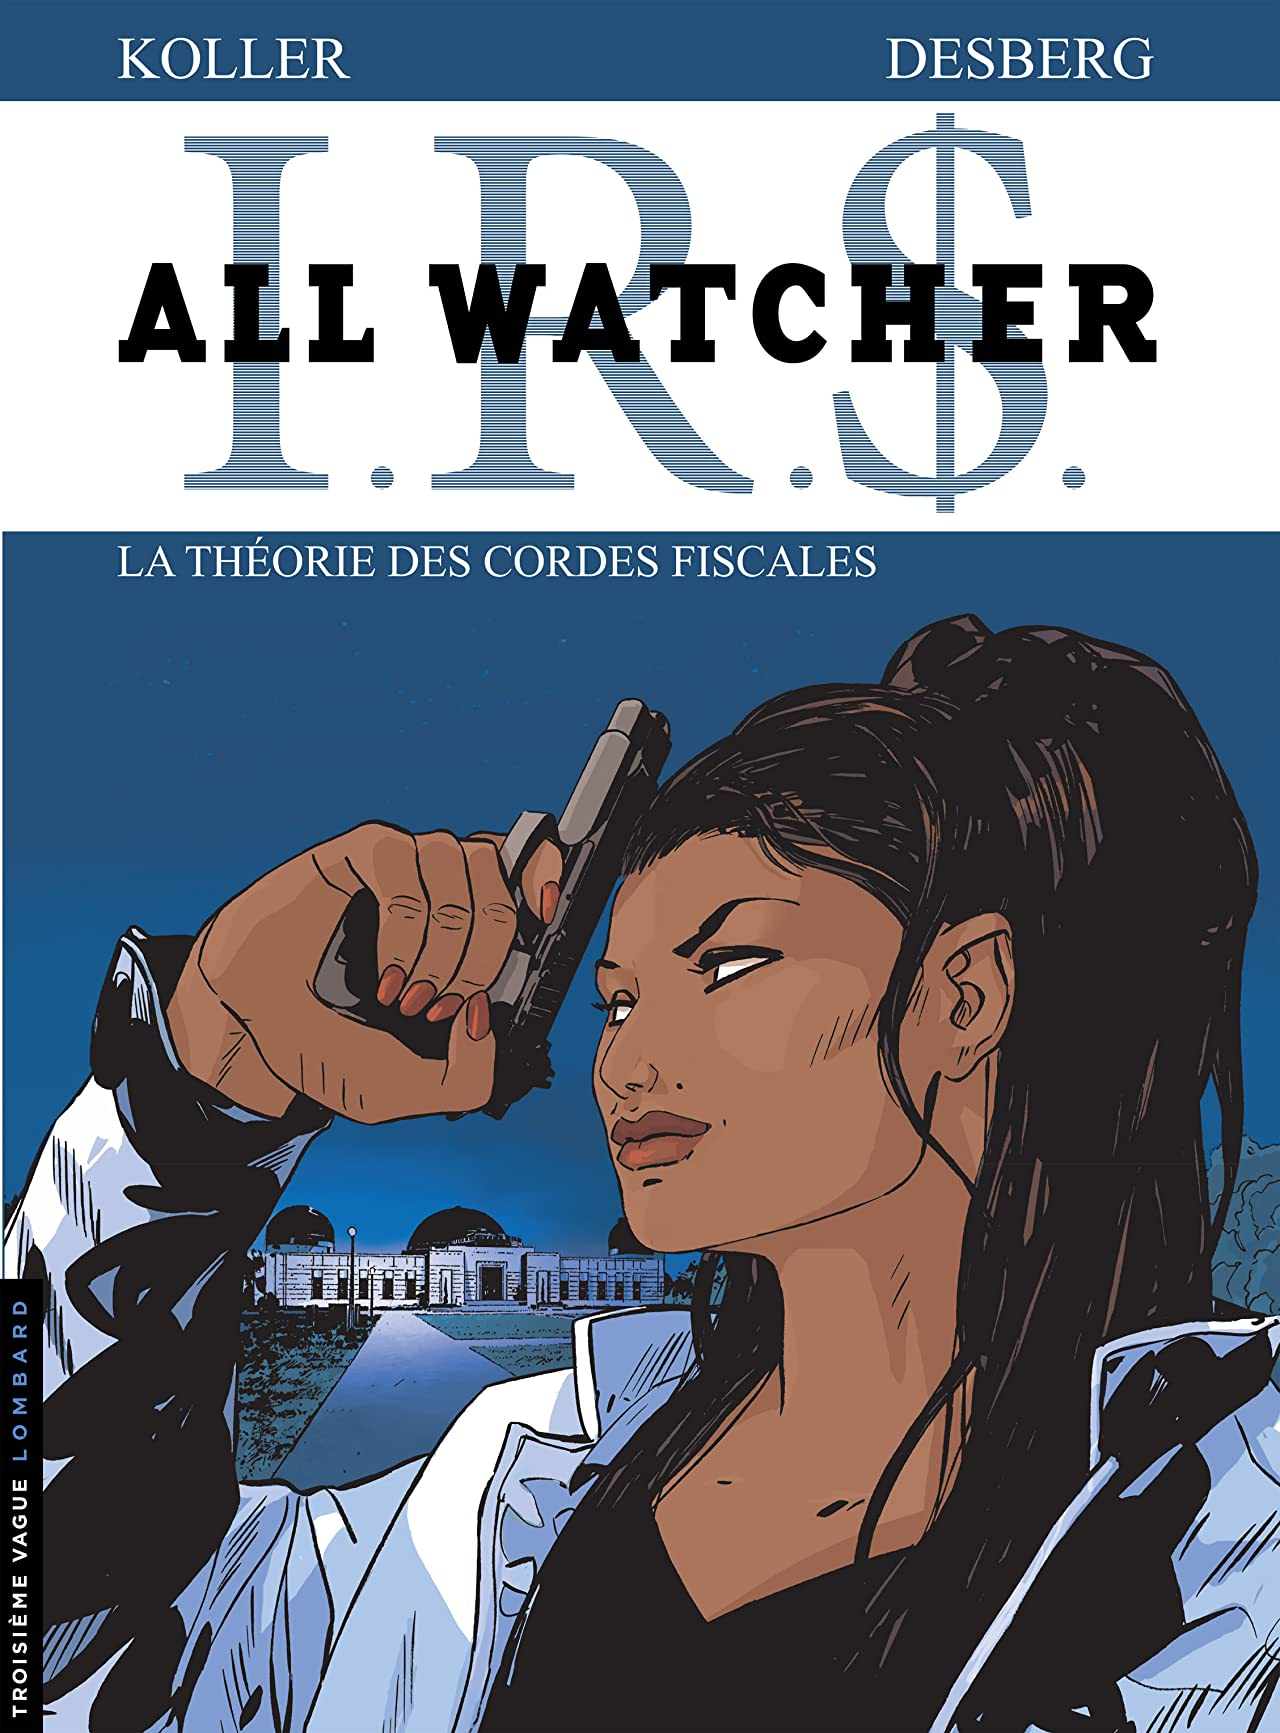 All Watcher Vol. 6: La théorie des cordes fiscales